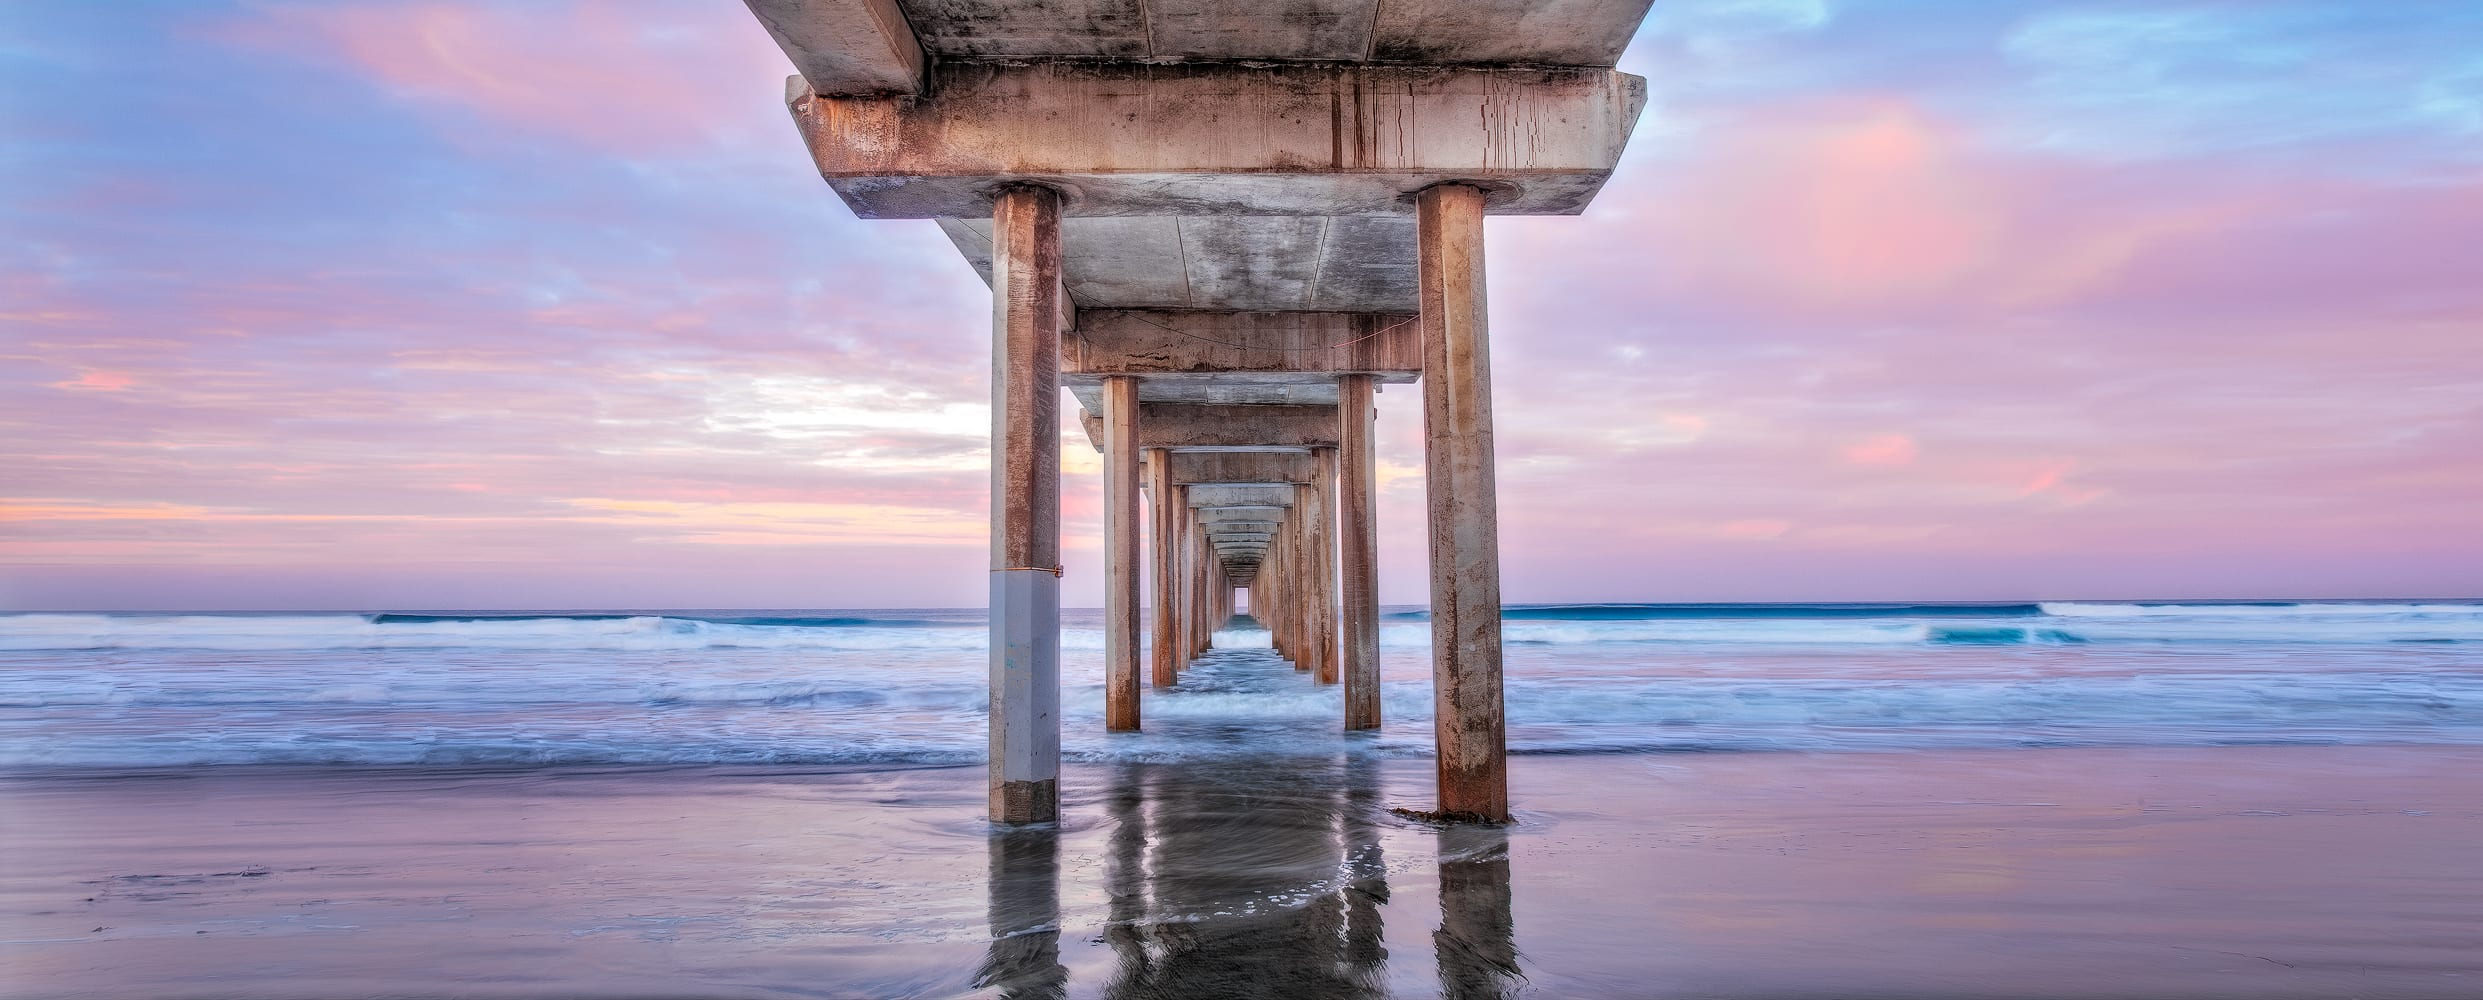 MB-Under_the_Pier_60x24-1